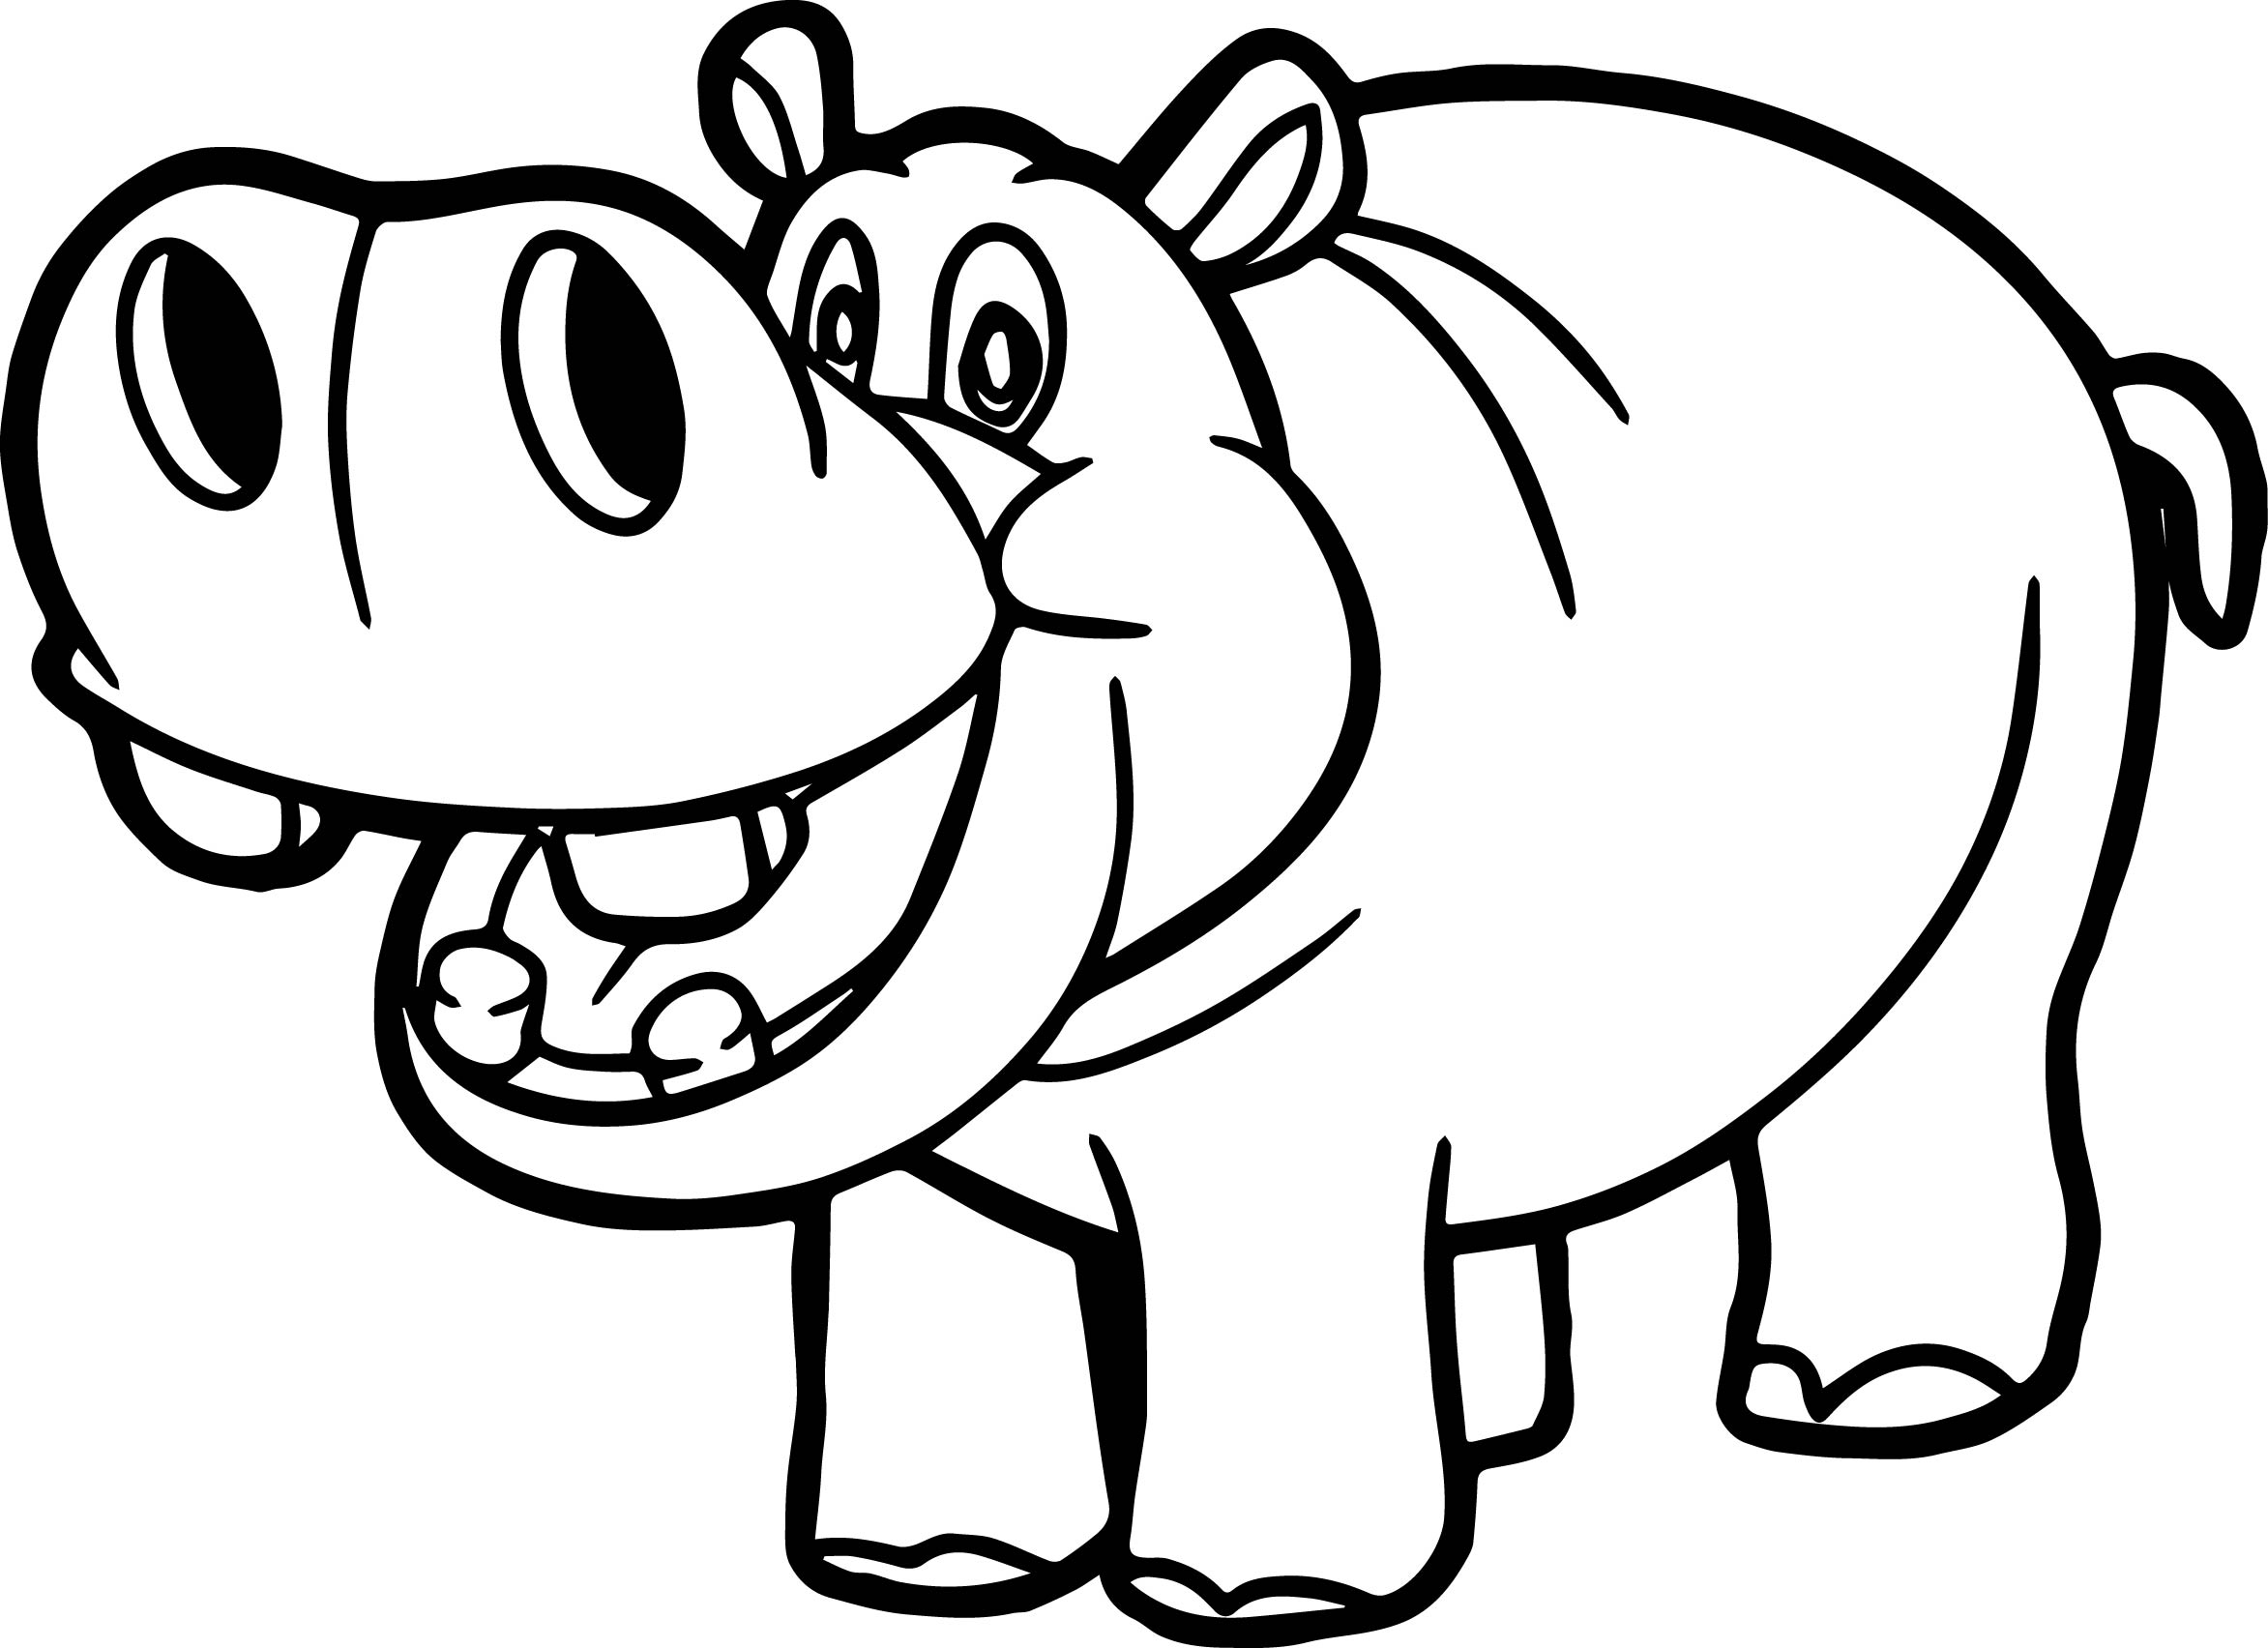 Clipart hippo coloring. Outline drawing at getdrawings